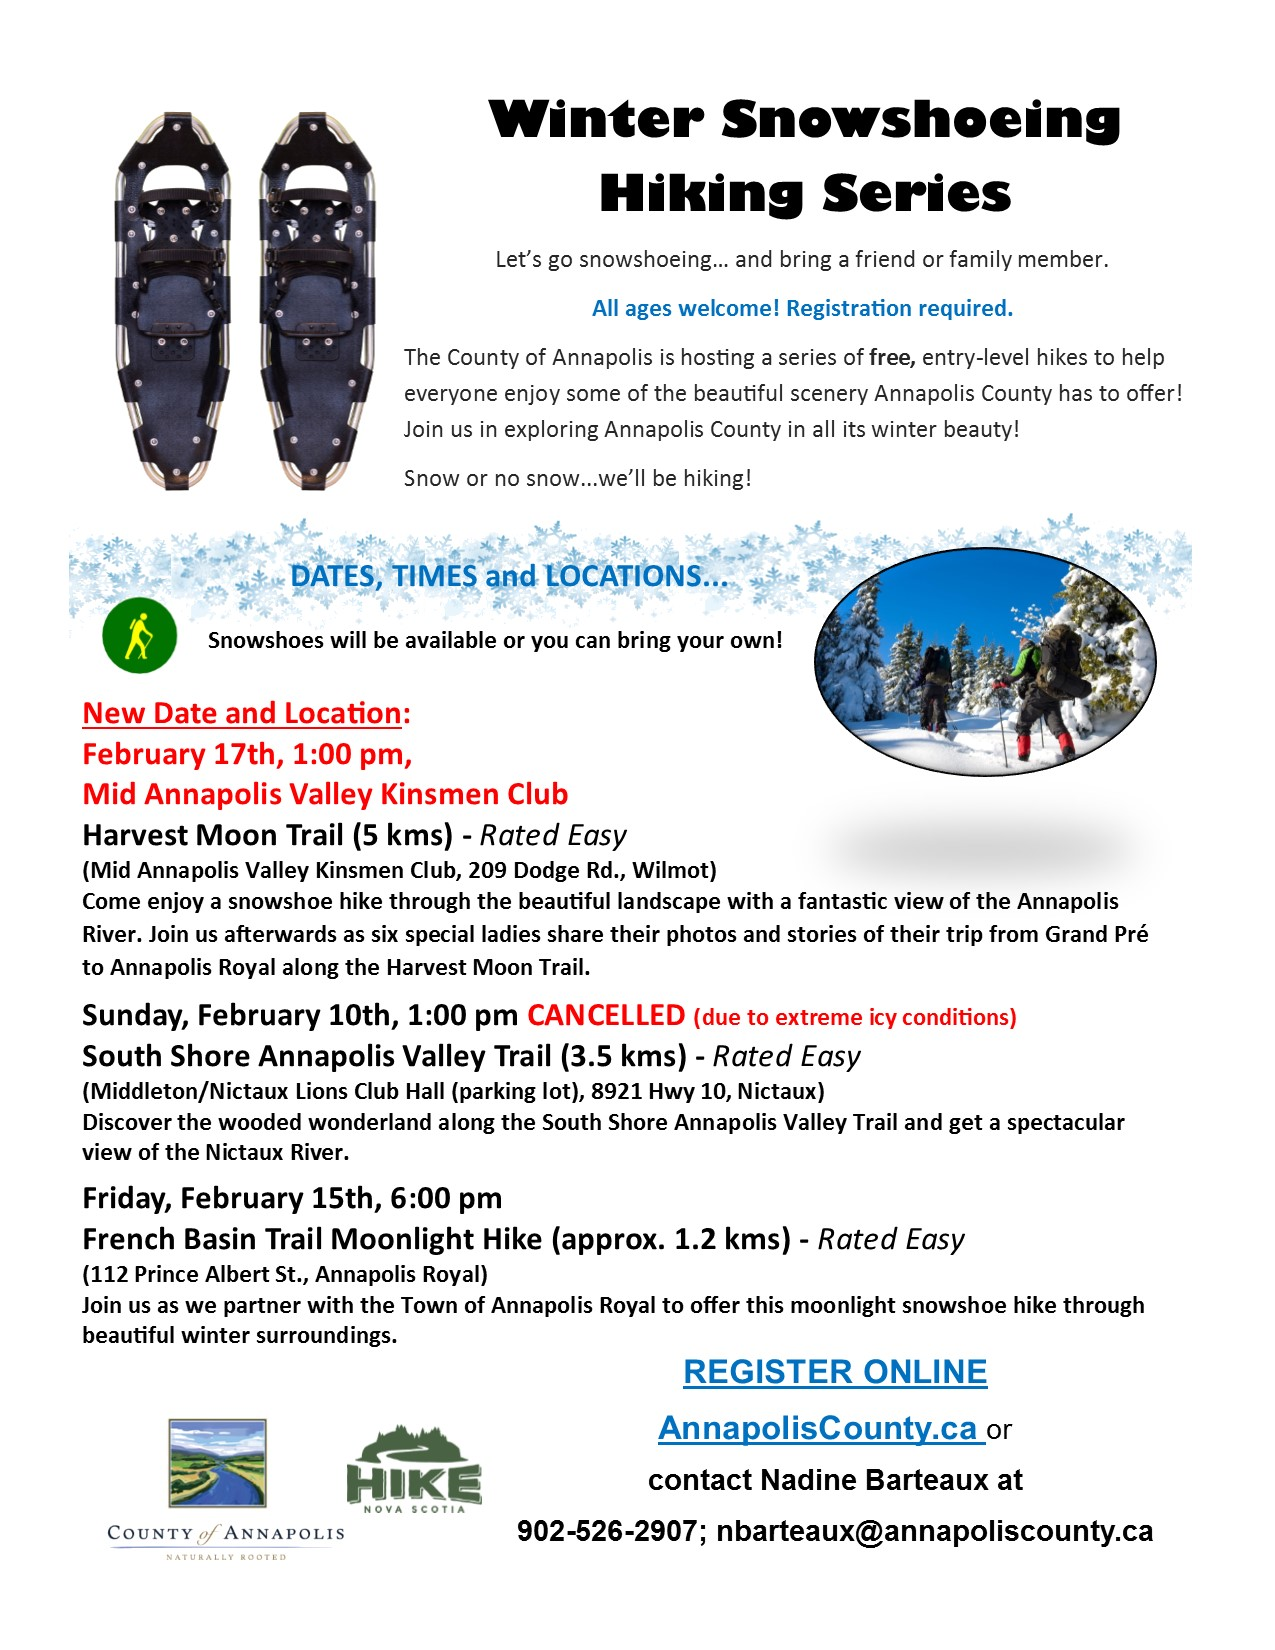 2019 Winter Snowshoeing Hiking Series poster revised Feb 9 19